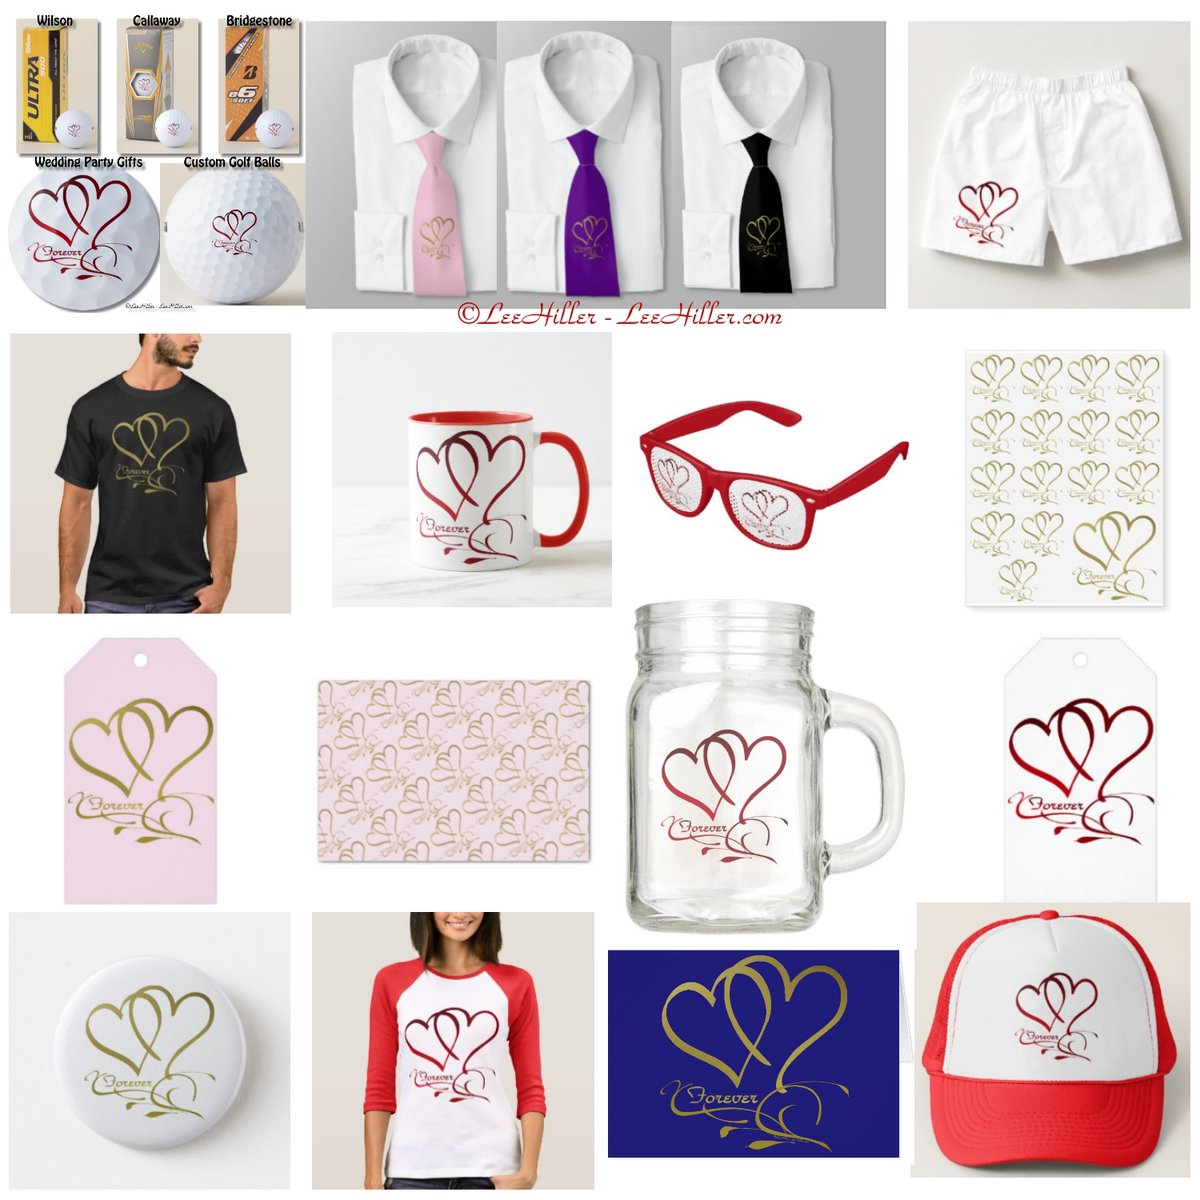 💗💌👩❤️👩💒💑💒👨❤️👨💌💗 Forever #hearts #gifts Customize add names, date, location etc & or change background color #wedding #anniversary  #keepsake 50%OFF 20+items 15%OFF Everything else #sale #discountcode 50ZAZZLEBIZZ  ends02/20/2020 @ 11:59PST #gifts